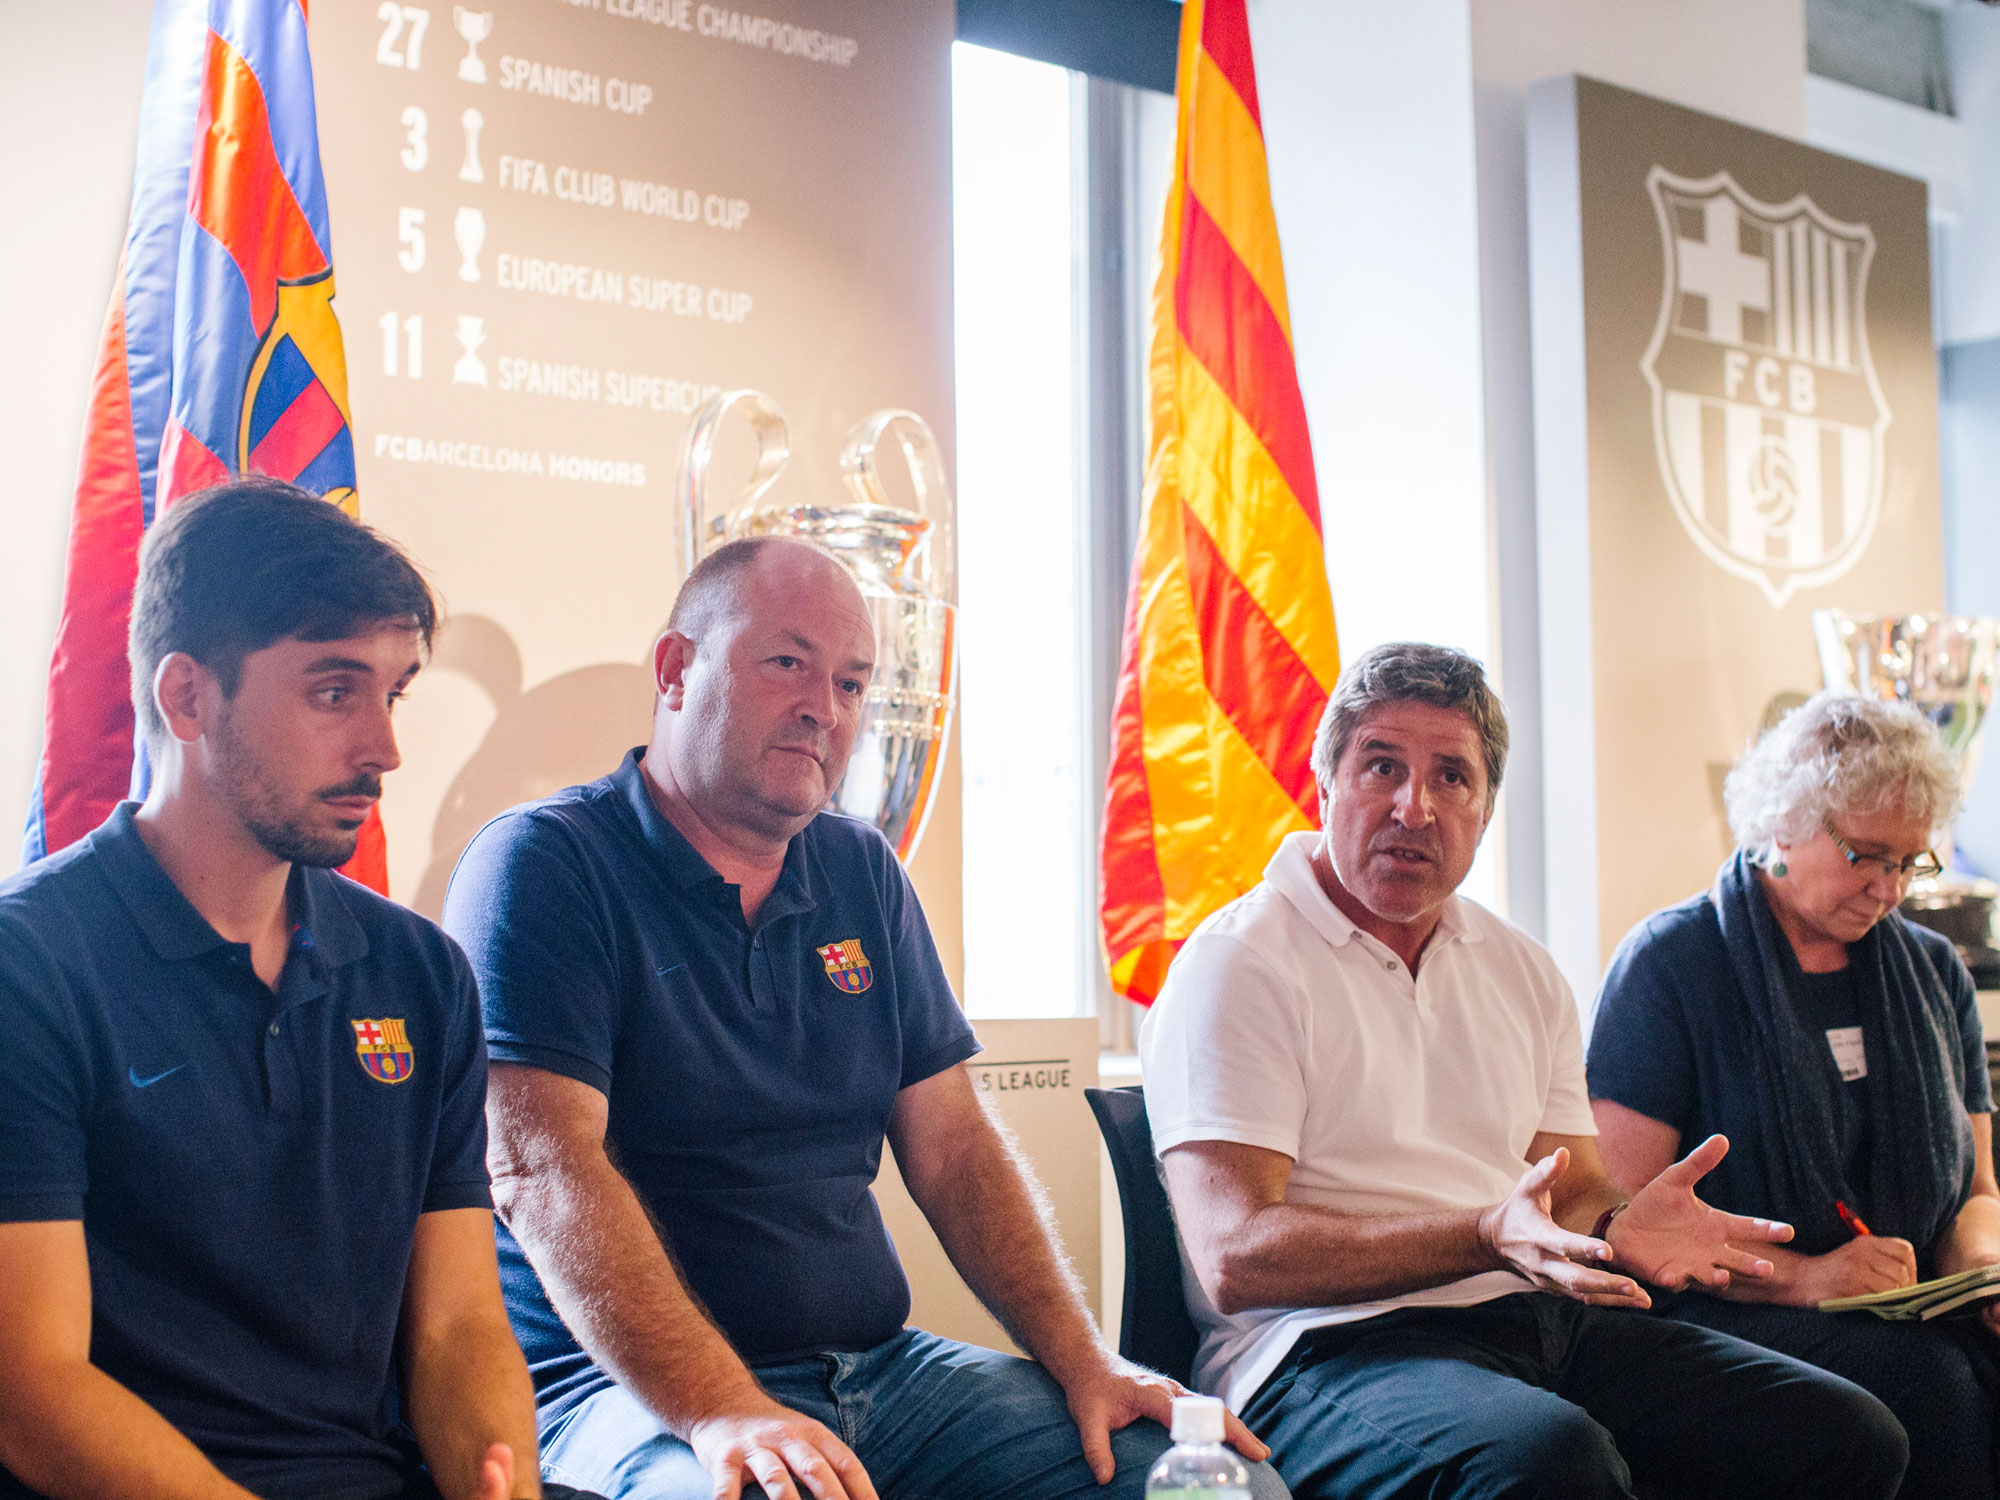 Jordi Roura is the head of Barcelona's academy and youth development